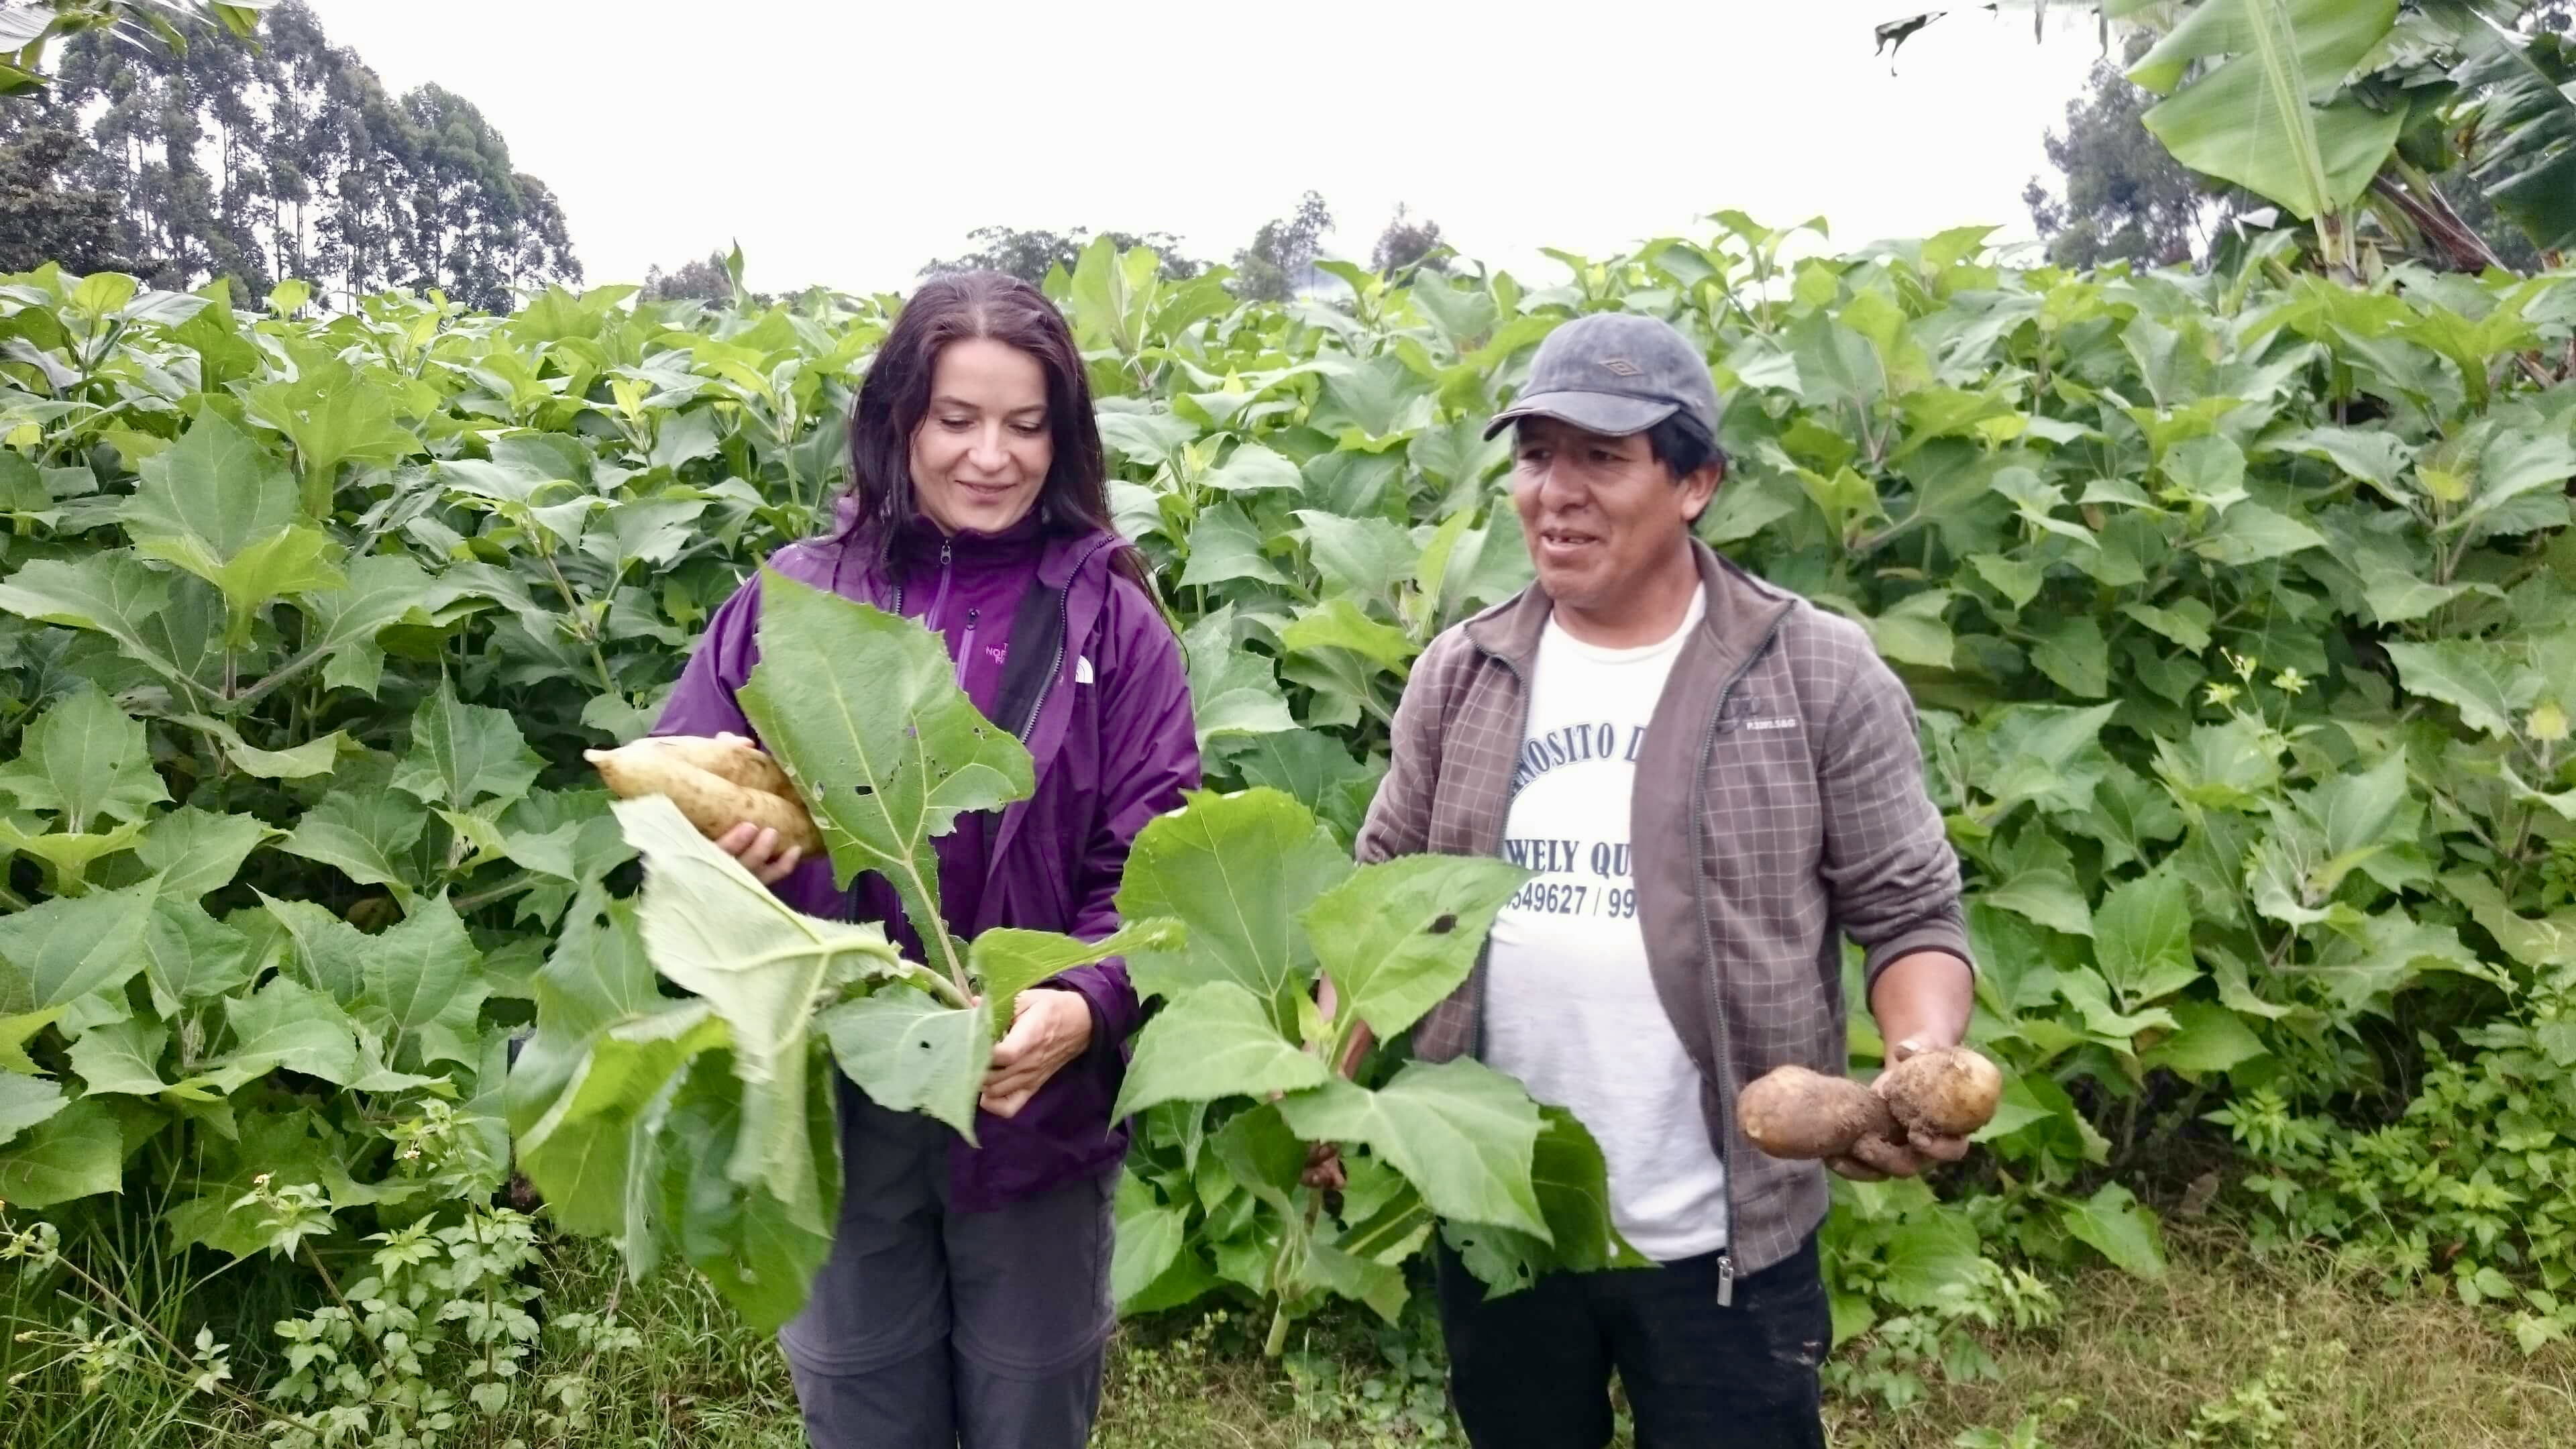 Tereza Havrlandova - Lifefood founder - at the yacon farm in Peru